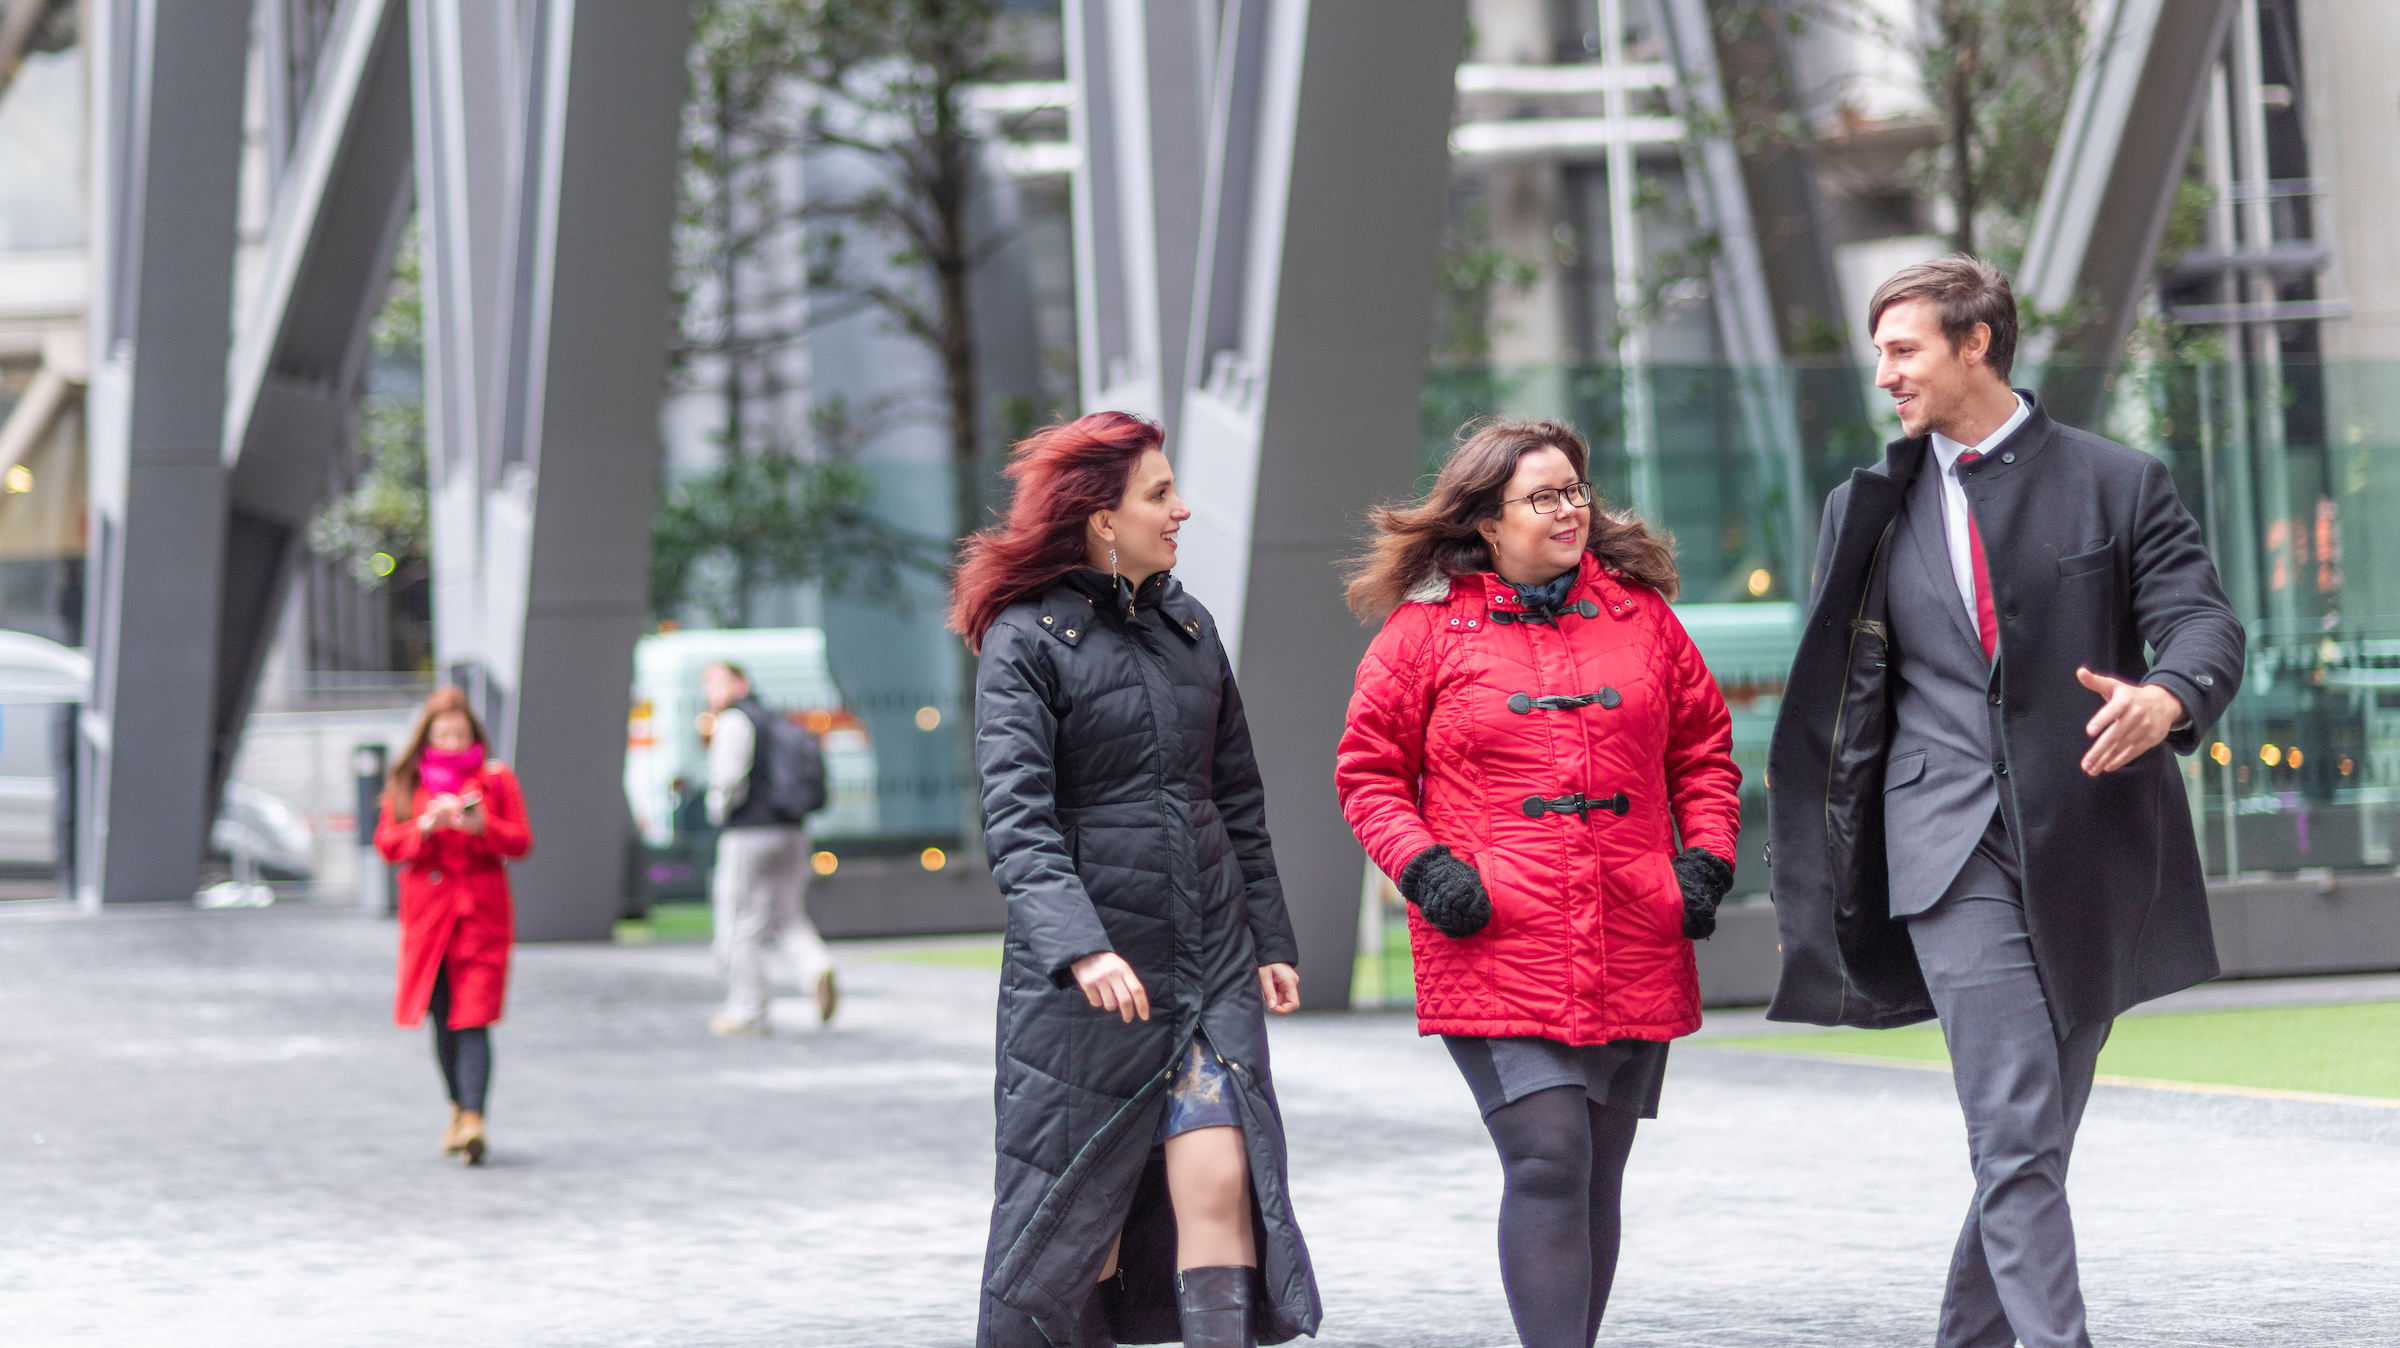 Three colleagues (two female, one male) walking across a city square, wrapped up in winter coats